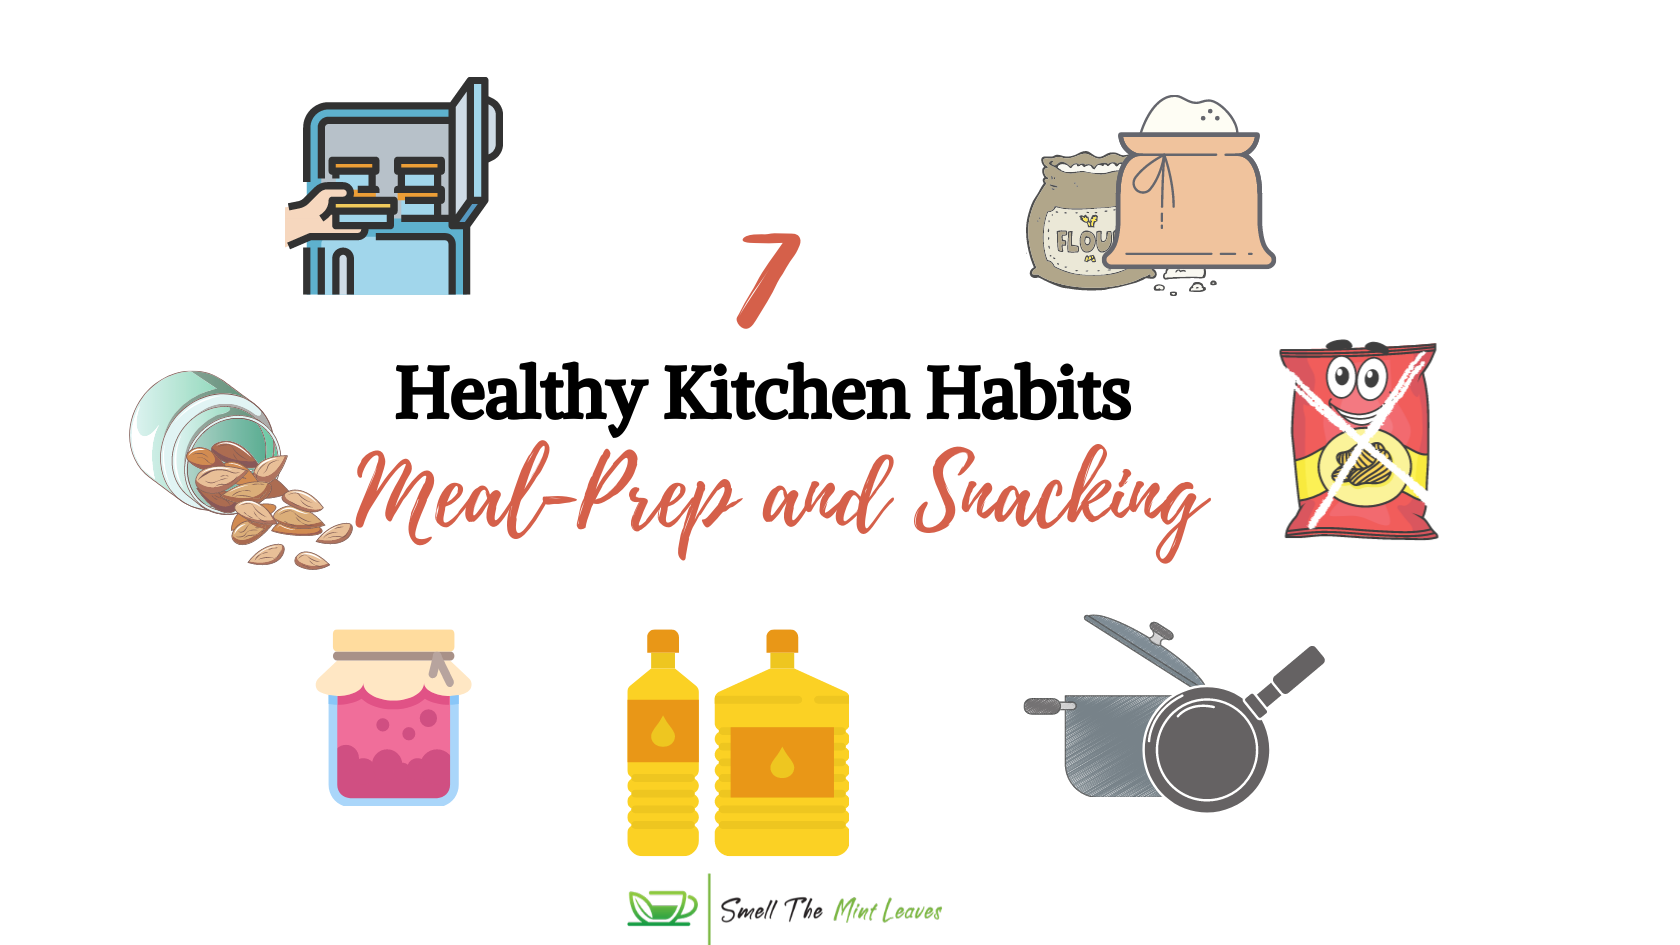 Healthy Kitchen Habits Image